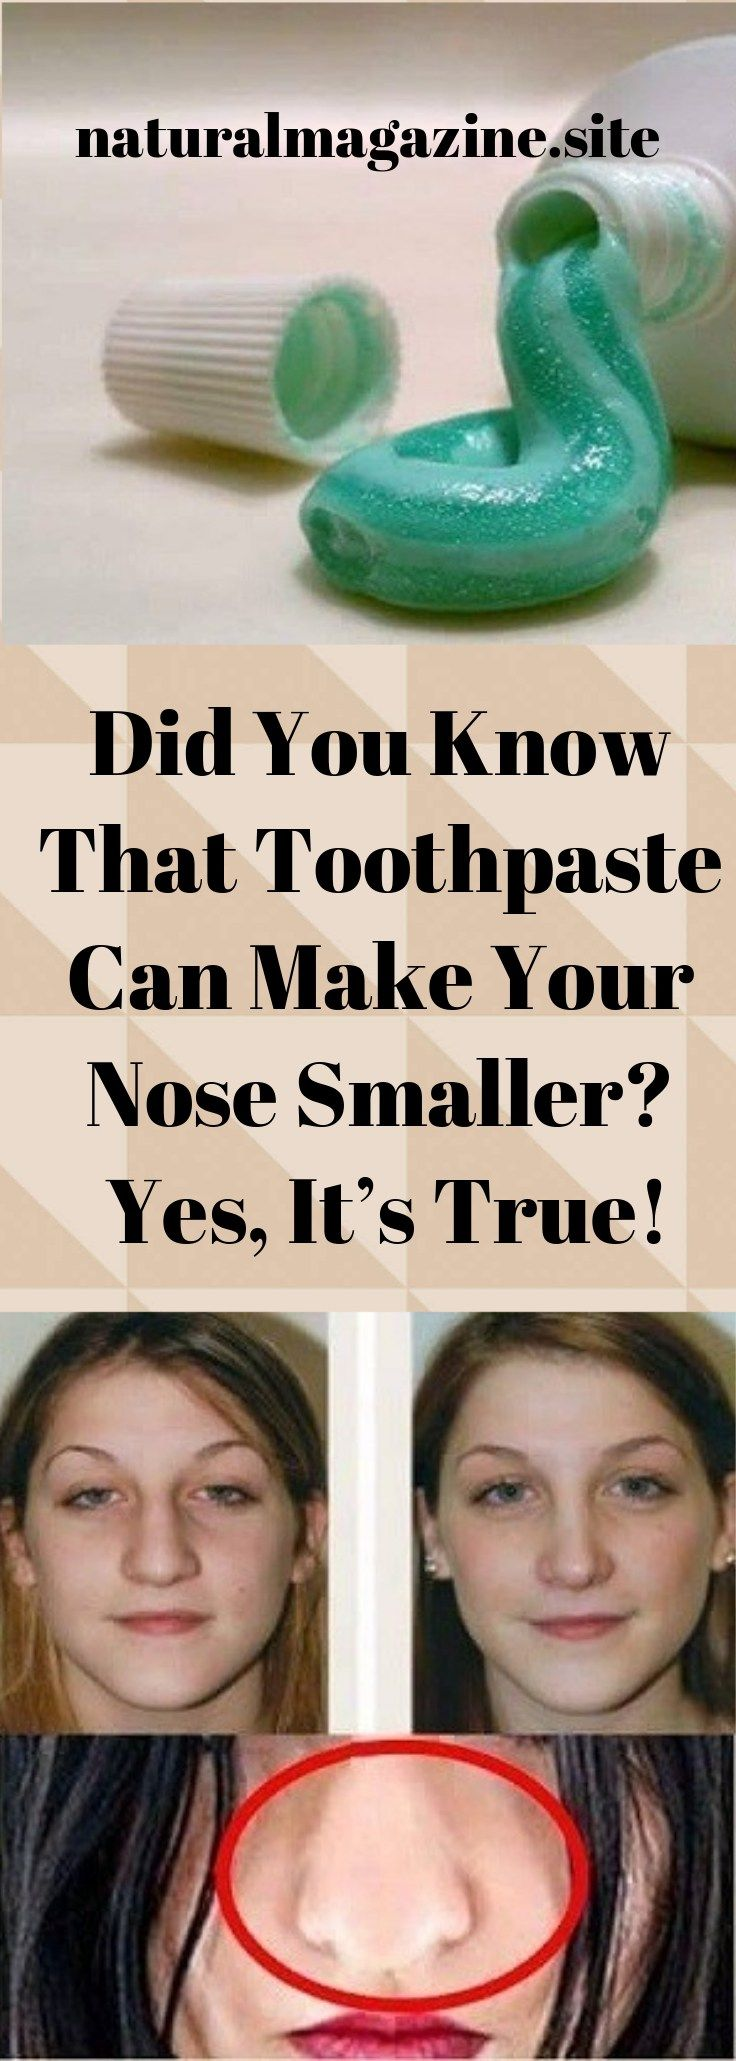 Did You Know That Toothpaste Can Make Your Nose Smaller